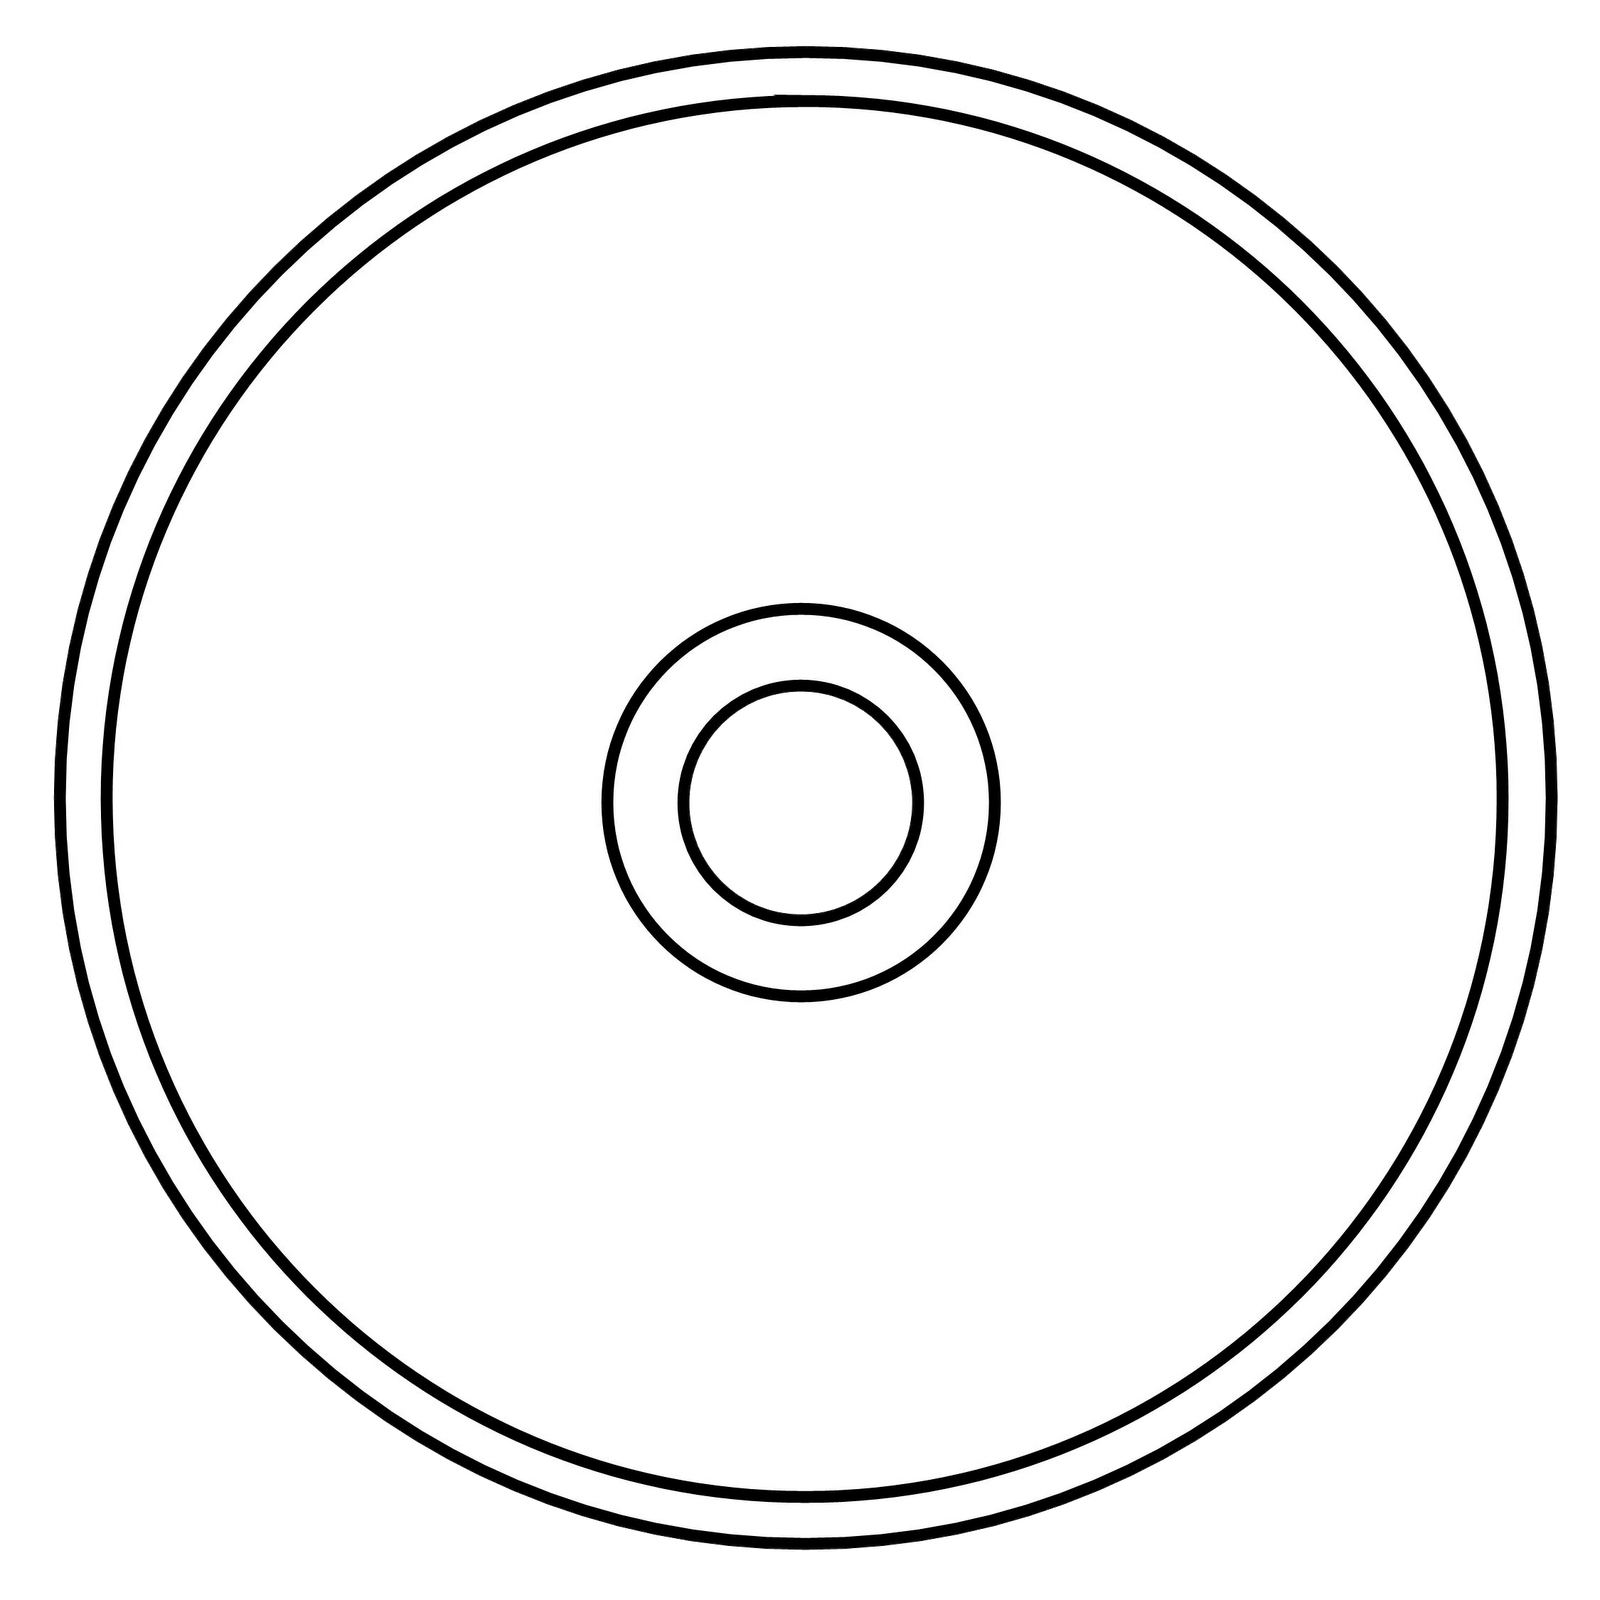 Transparent cd white. Collection of clipart